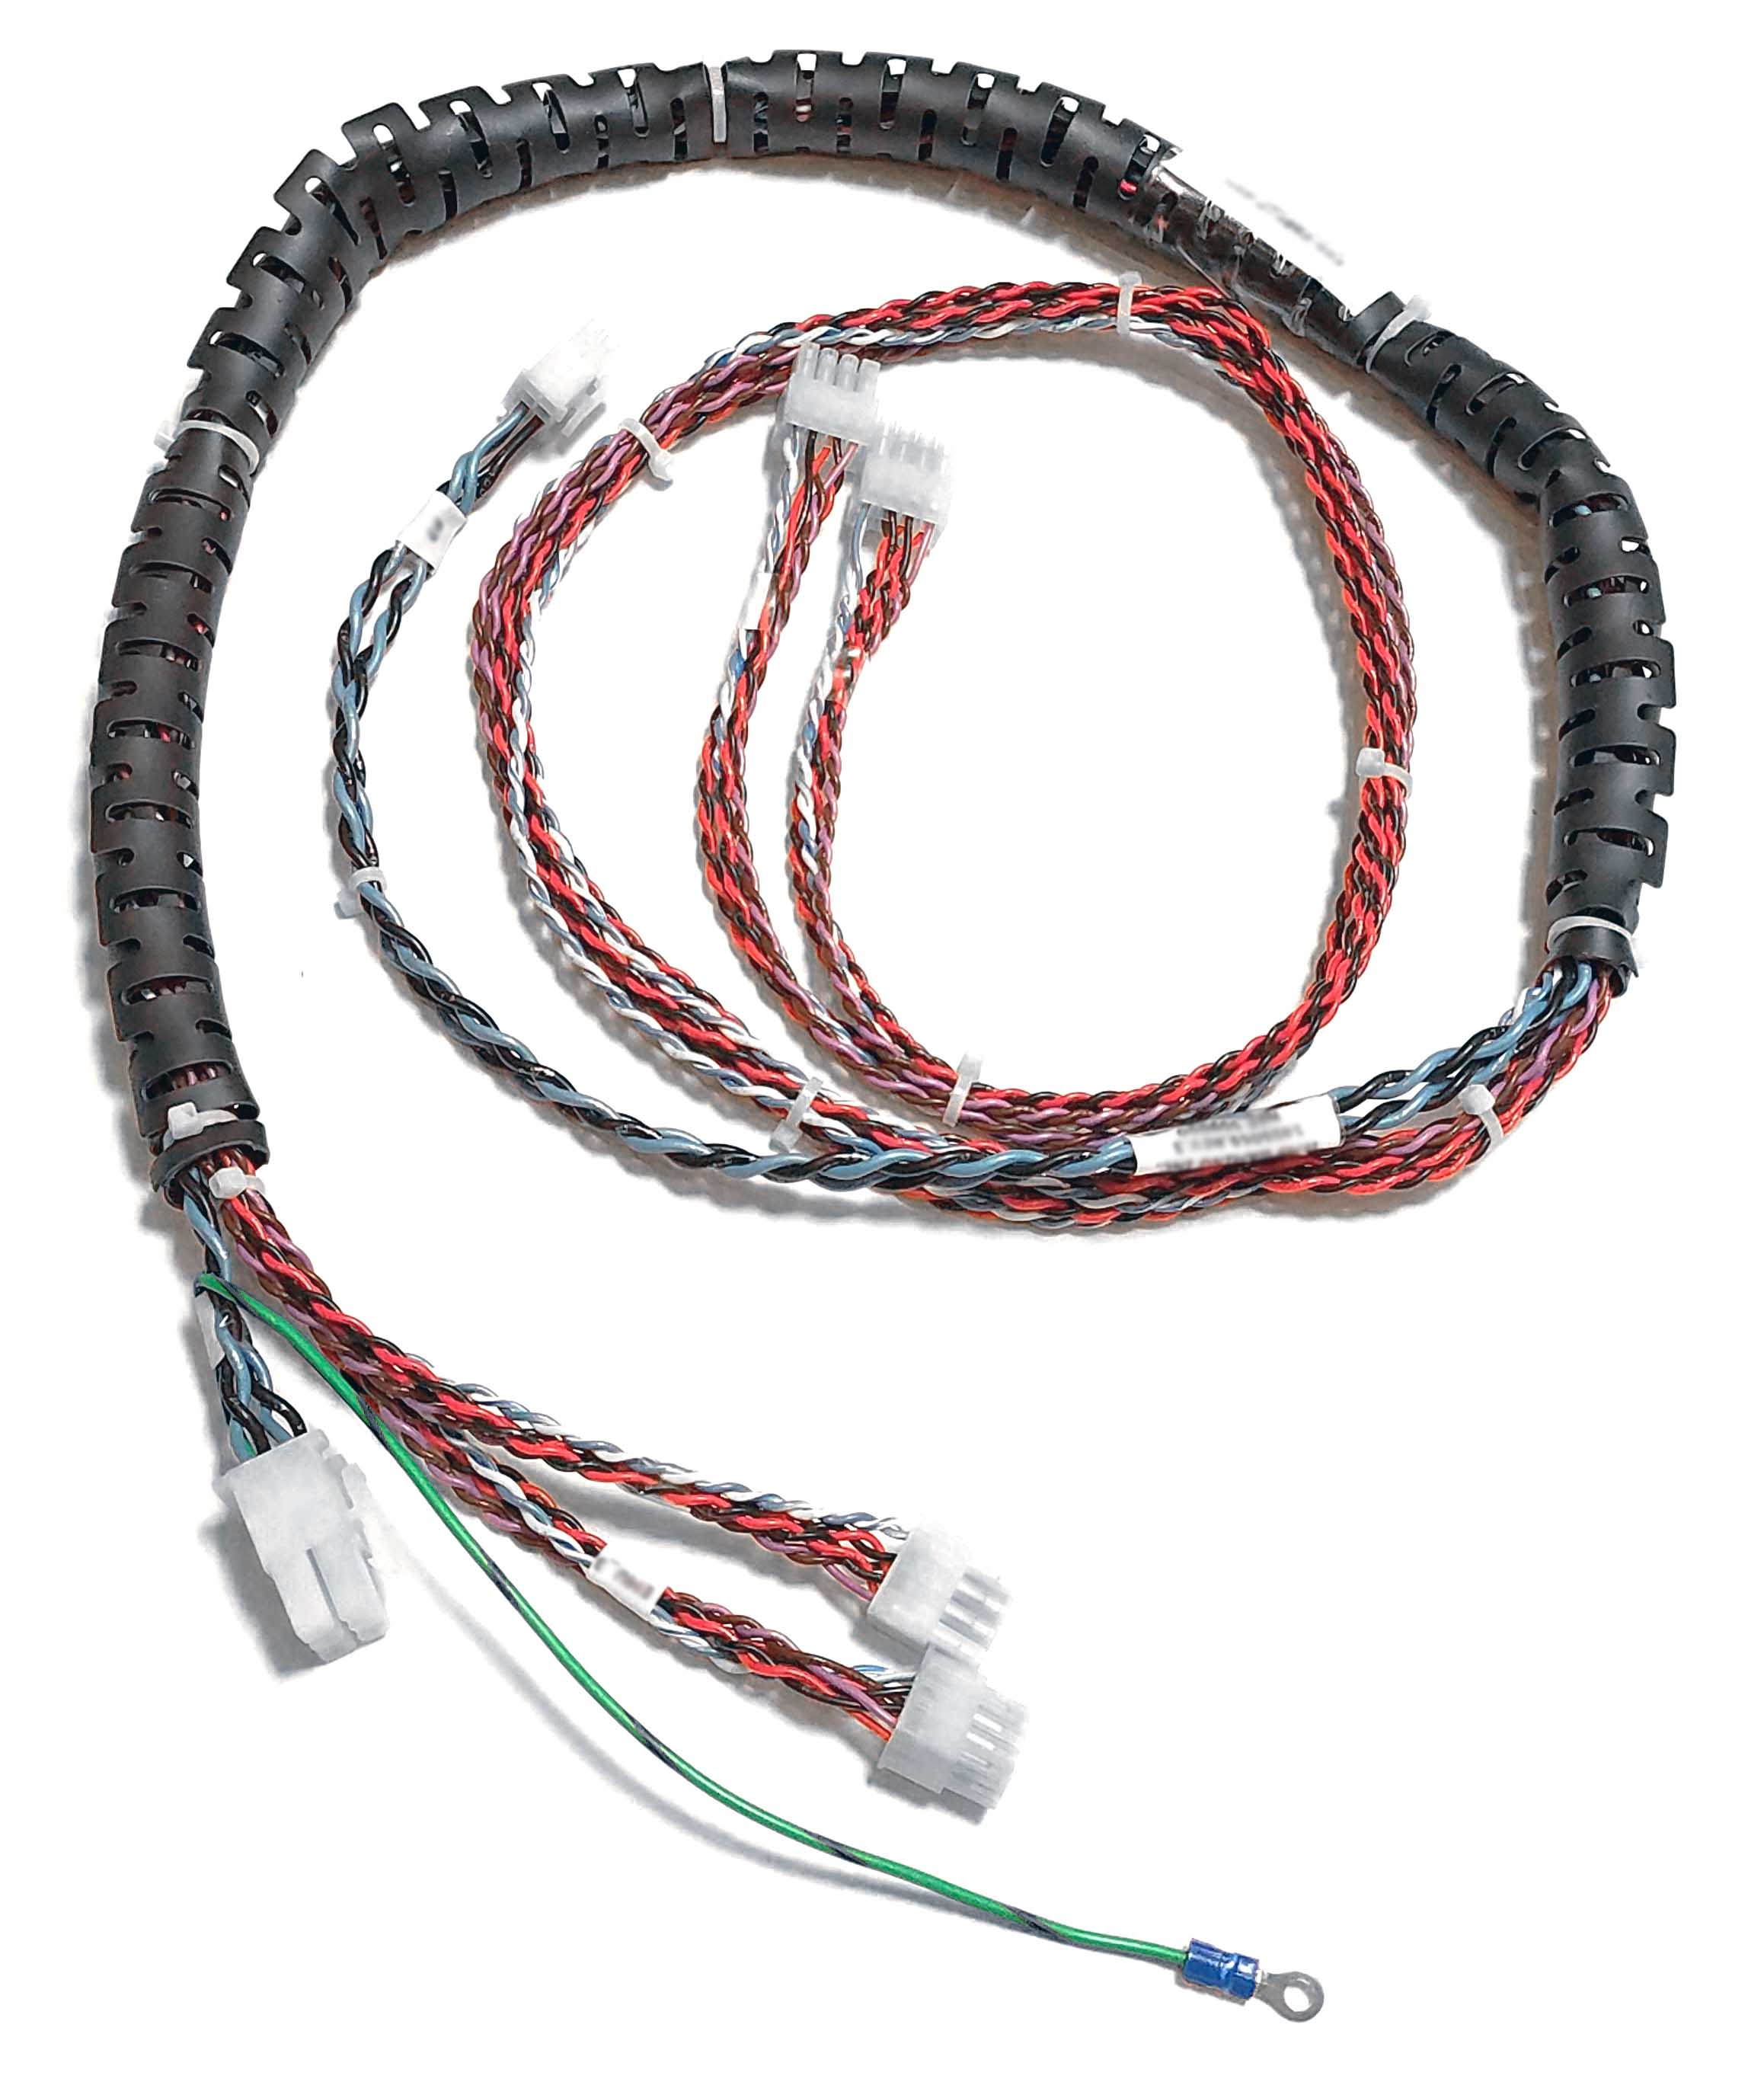 Cable Harness Manufacturing Nep Electronics Assembly Wire Harnesses Here Are Some Examples Of Our Capabilities Listed Above